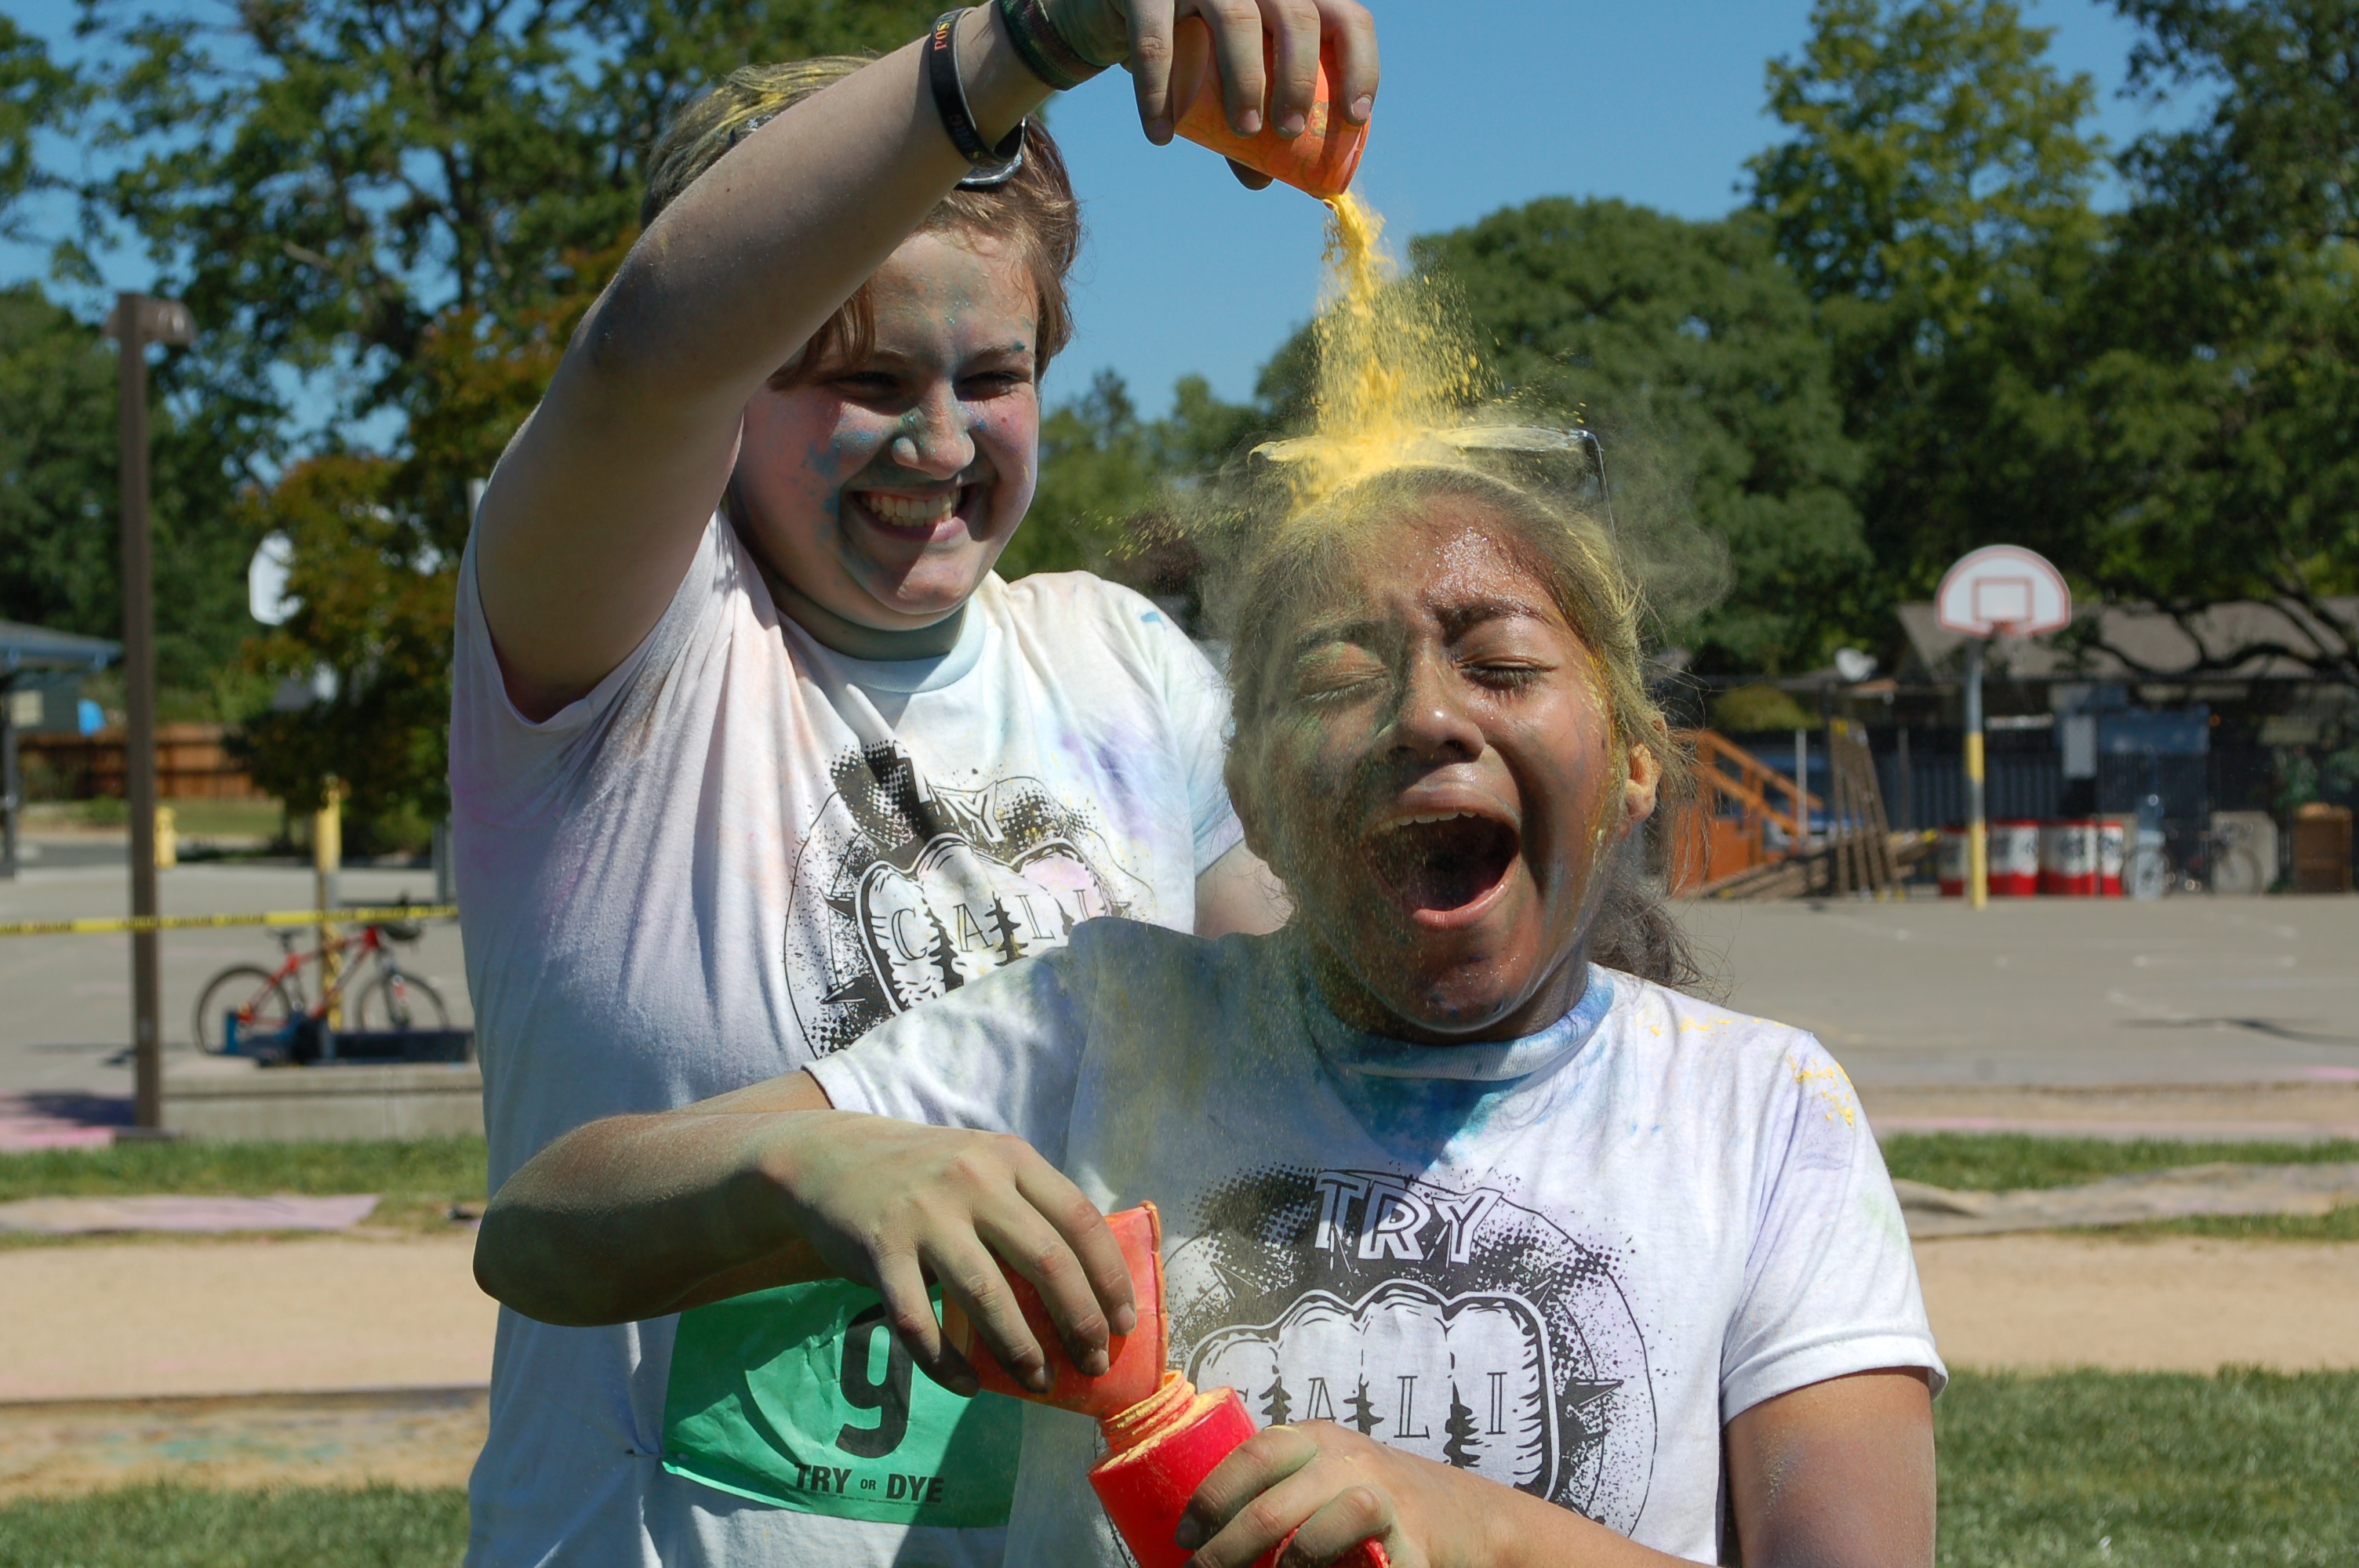 A photo of a student and a staff member playing with color powders.